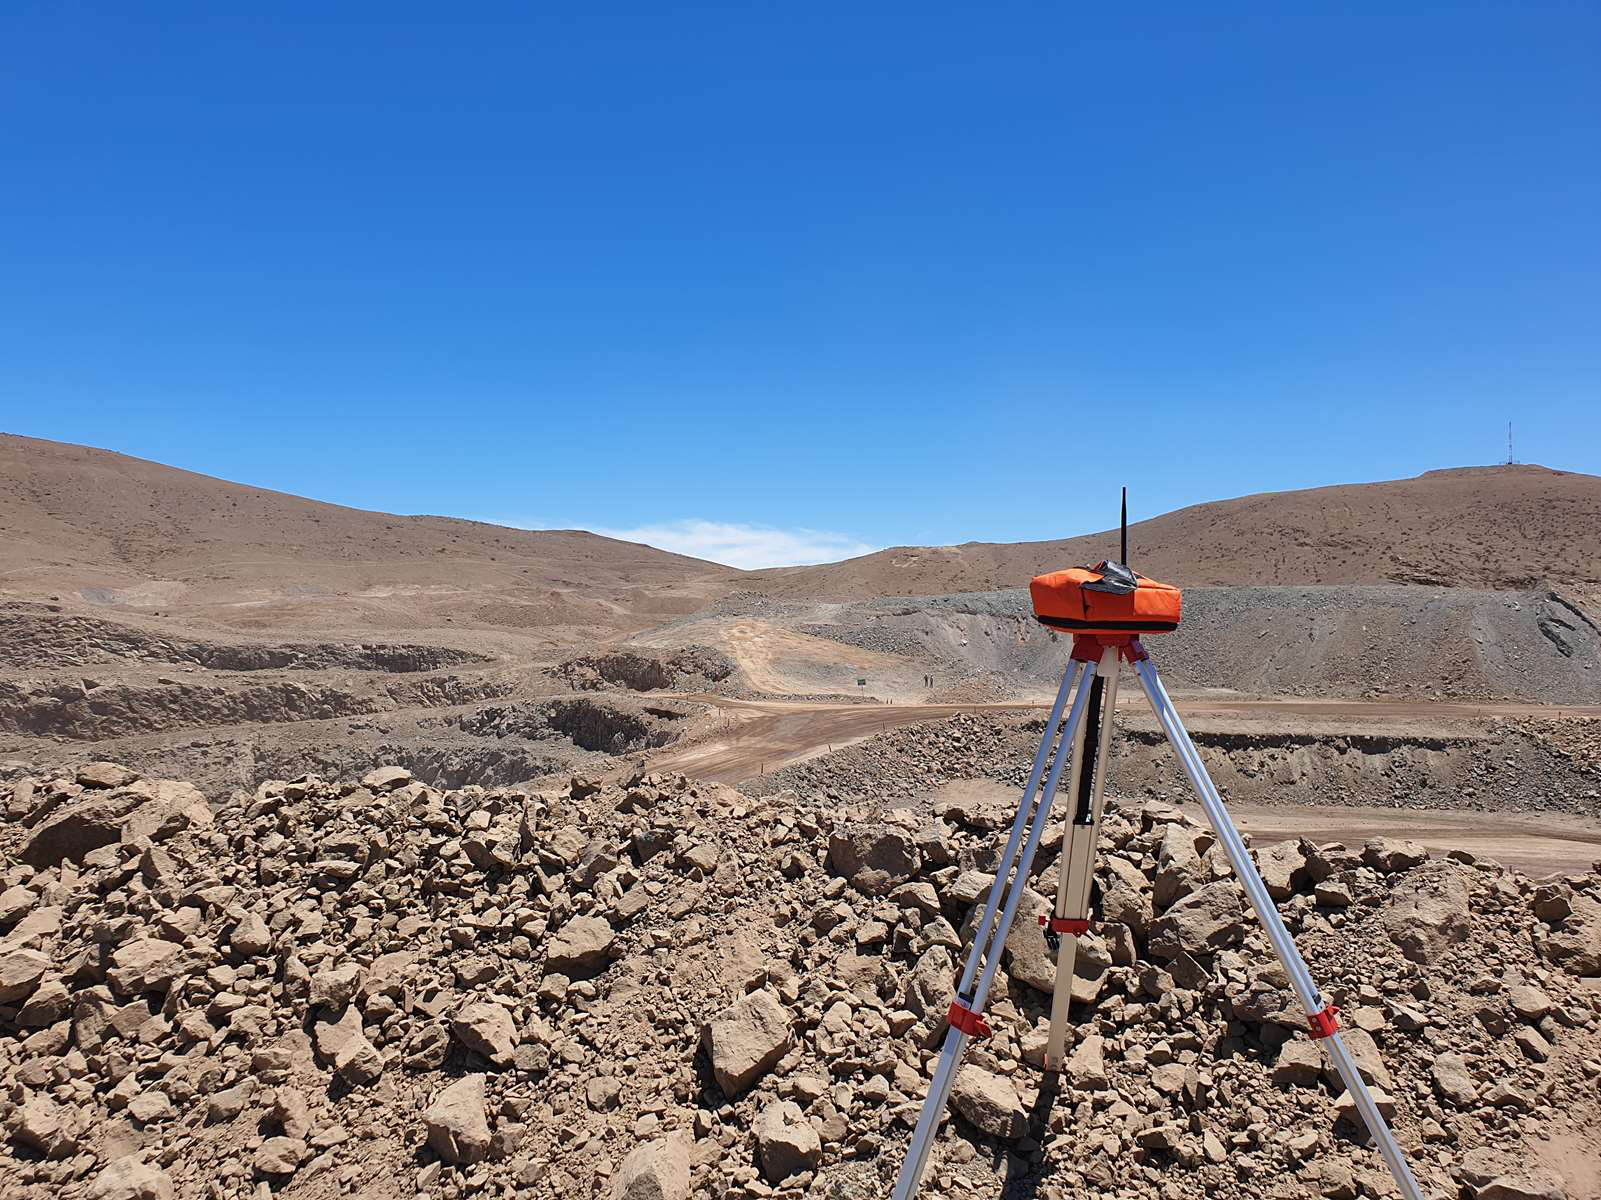 A wireless detonation system designed to increase productivity and safety at open pit mines